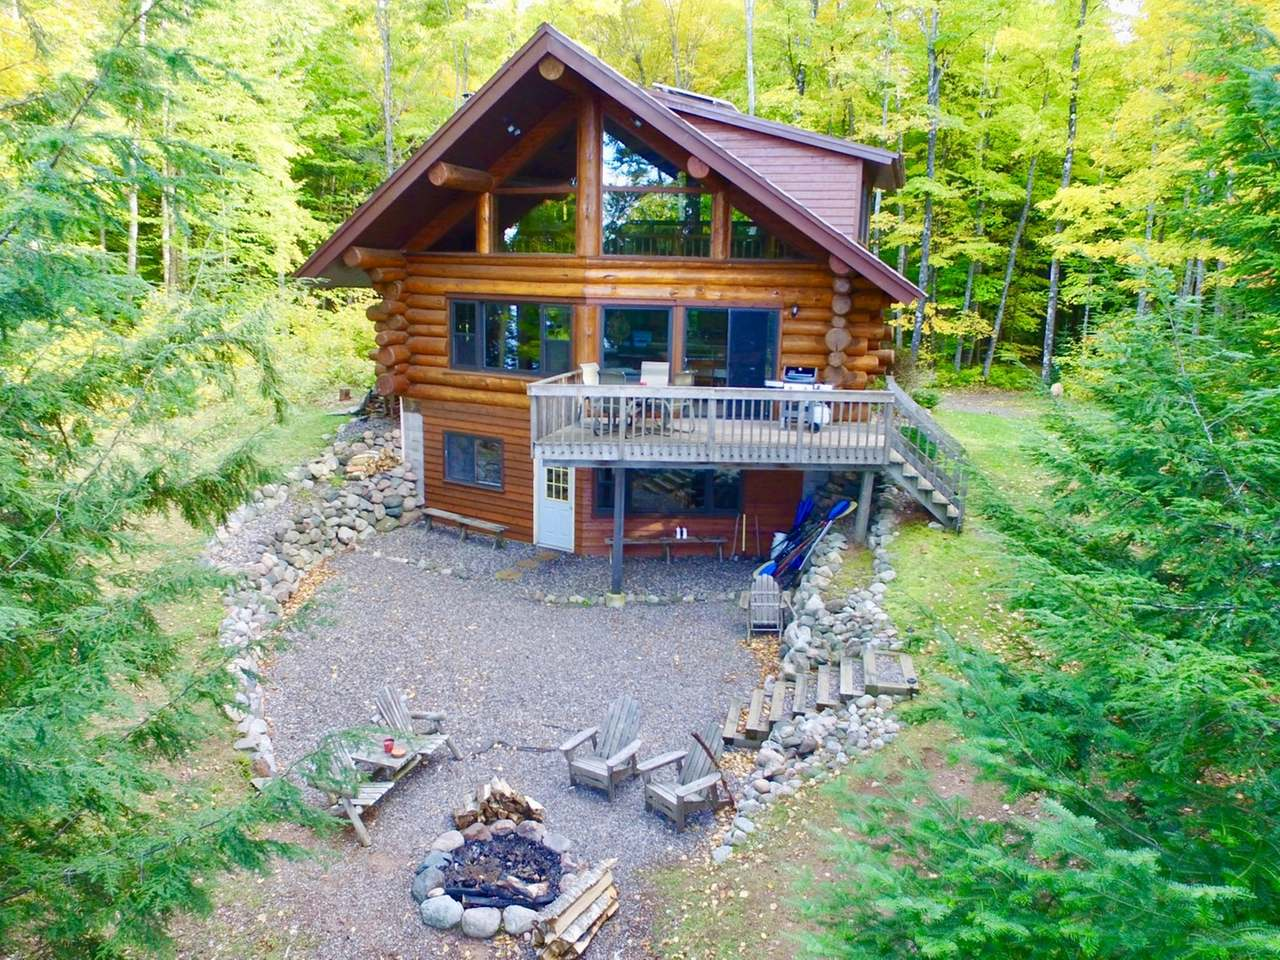 Beautiful full log cabin on secluded 71 acre Lehto Lake. This 2 BR, 2BTH fully off the grid getaway offers 129 acres of amazing mature wilderness surrounded by large private tracks of land. The land features large eskers, trails and hunting plots throughout. The property has 350ft of sand North West facing frontage and is 1 of 3 homes on the entire lake. The cabin is constructed with huge logs and is equipped with solar panels and LP and offers a high-end kitchen and bathrooms with granite countertops and well-crafted cabinetry. Lehto Lake is a great fishery with Panfish, Bass, and Northern Pike. Only 30 mins from Minocqua and 25 mins from Manitowish Waters, this property is centrally located to many shops, restaurants, bars, trails, state land and much more! Schedule an appointment today!